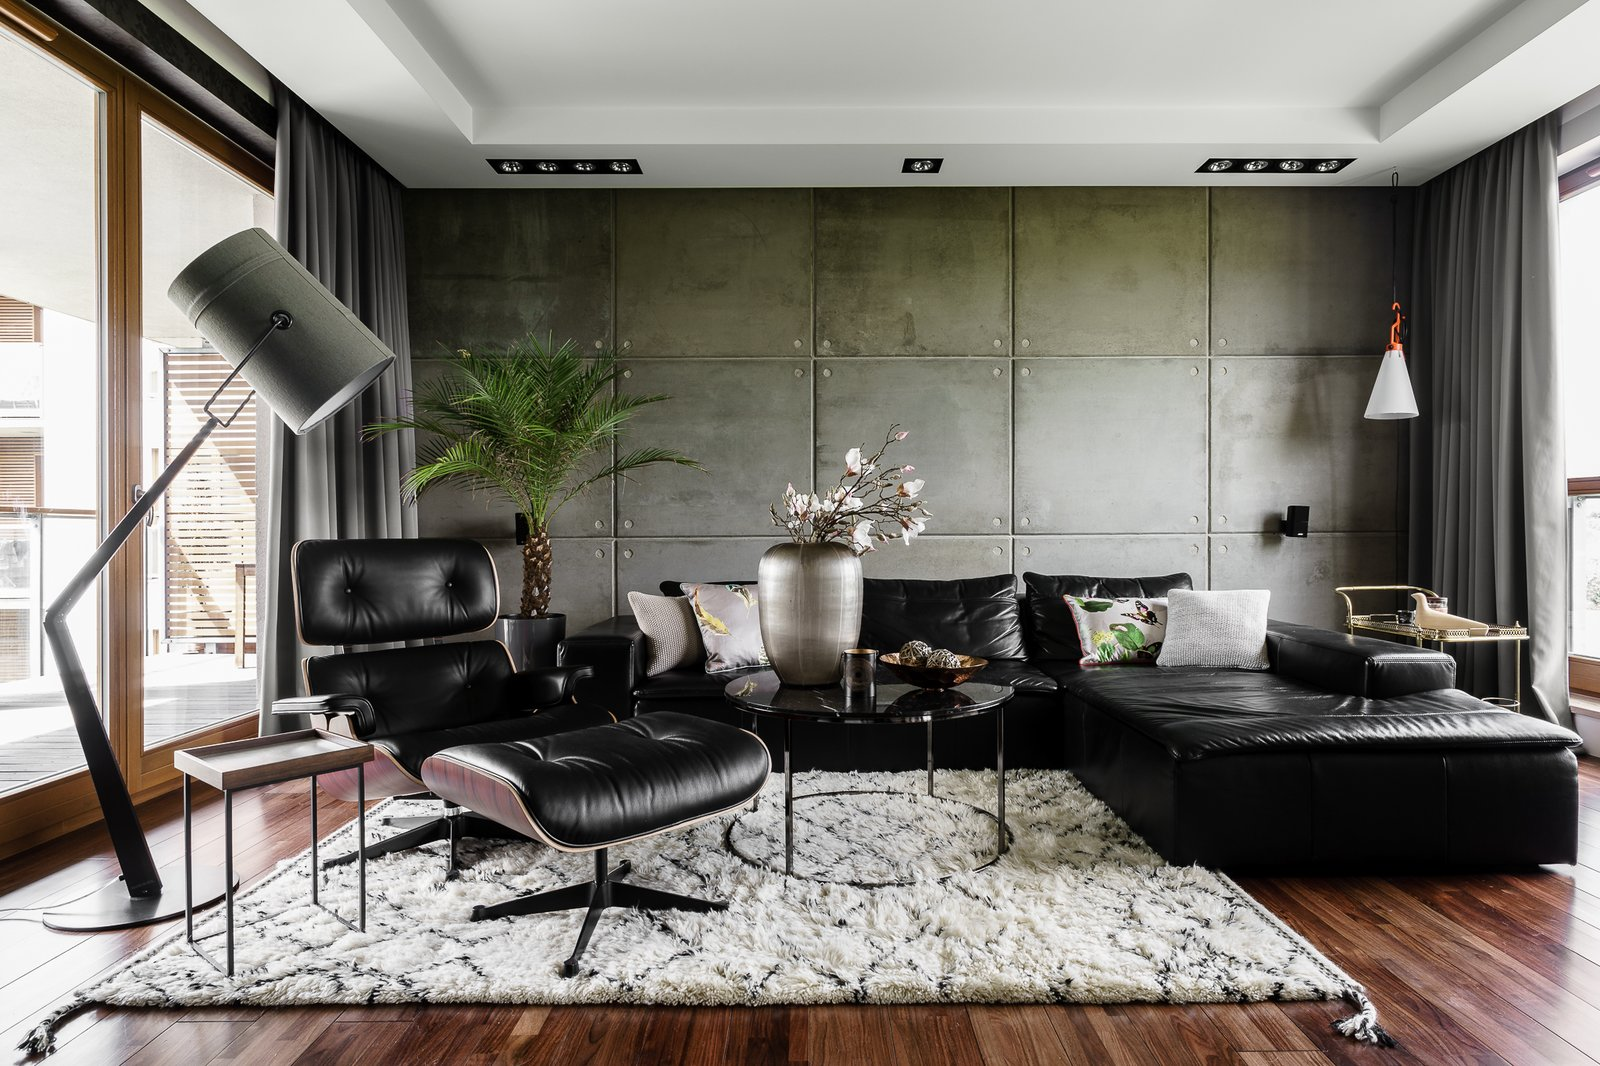 Eclectic APARTMENT & Eclectic APARTMENT Modern Home in Gdańsk pomorskie Polska by ...